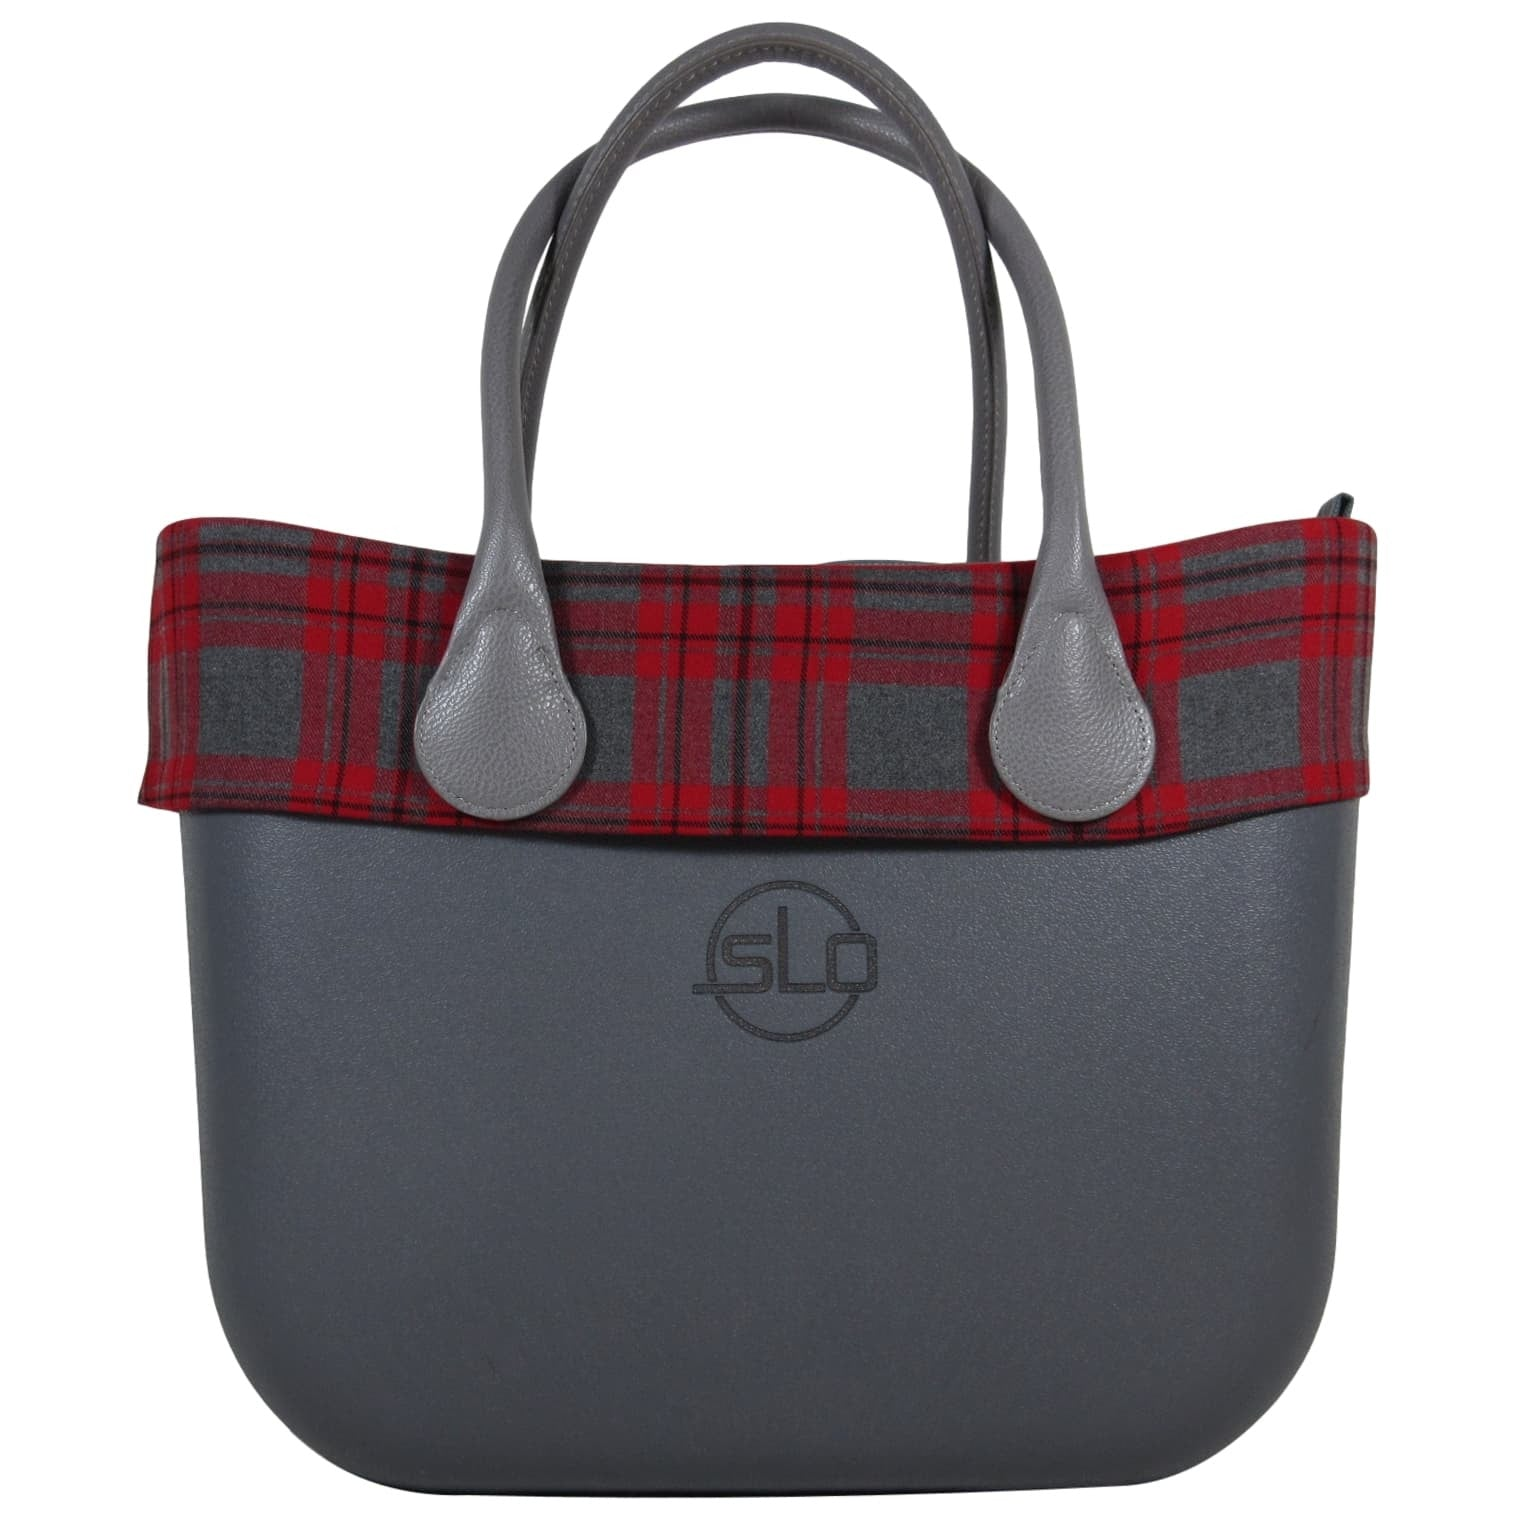 SLOW SLO Fashion Grande Handbag Bonnie Tartan designer travel or every day tote